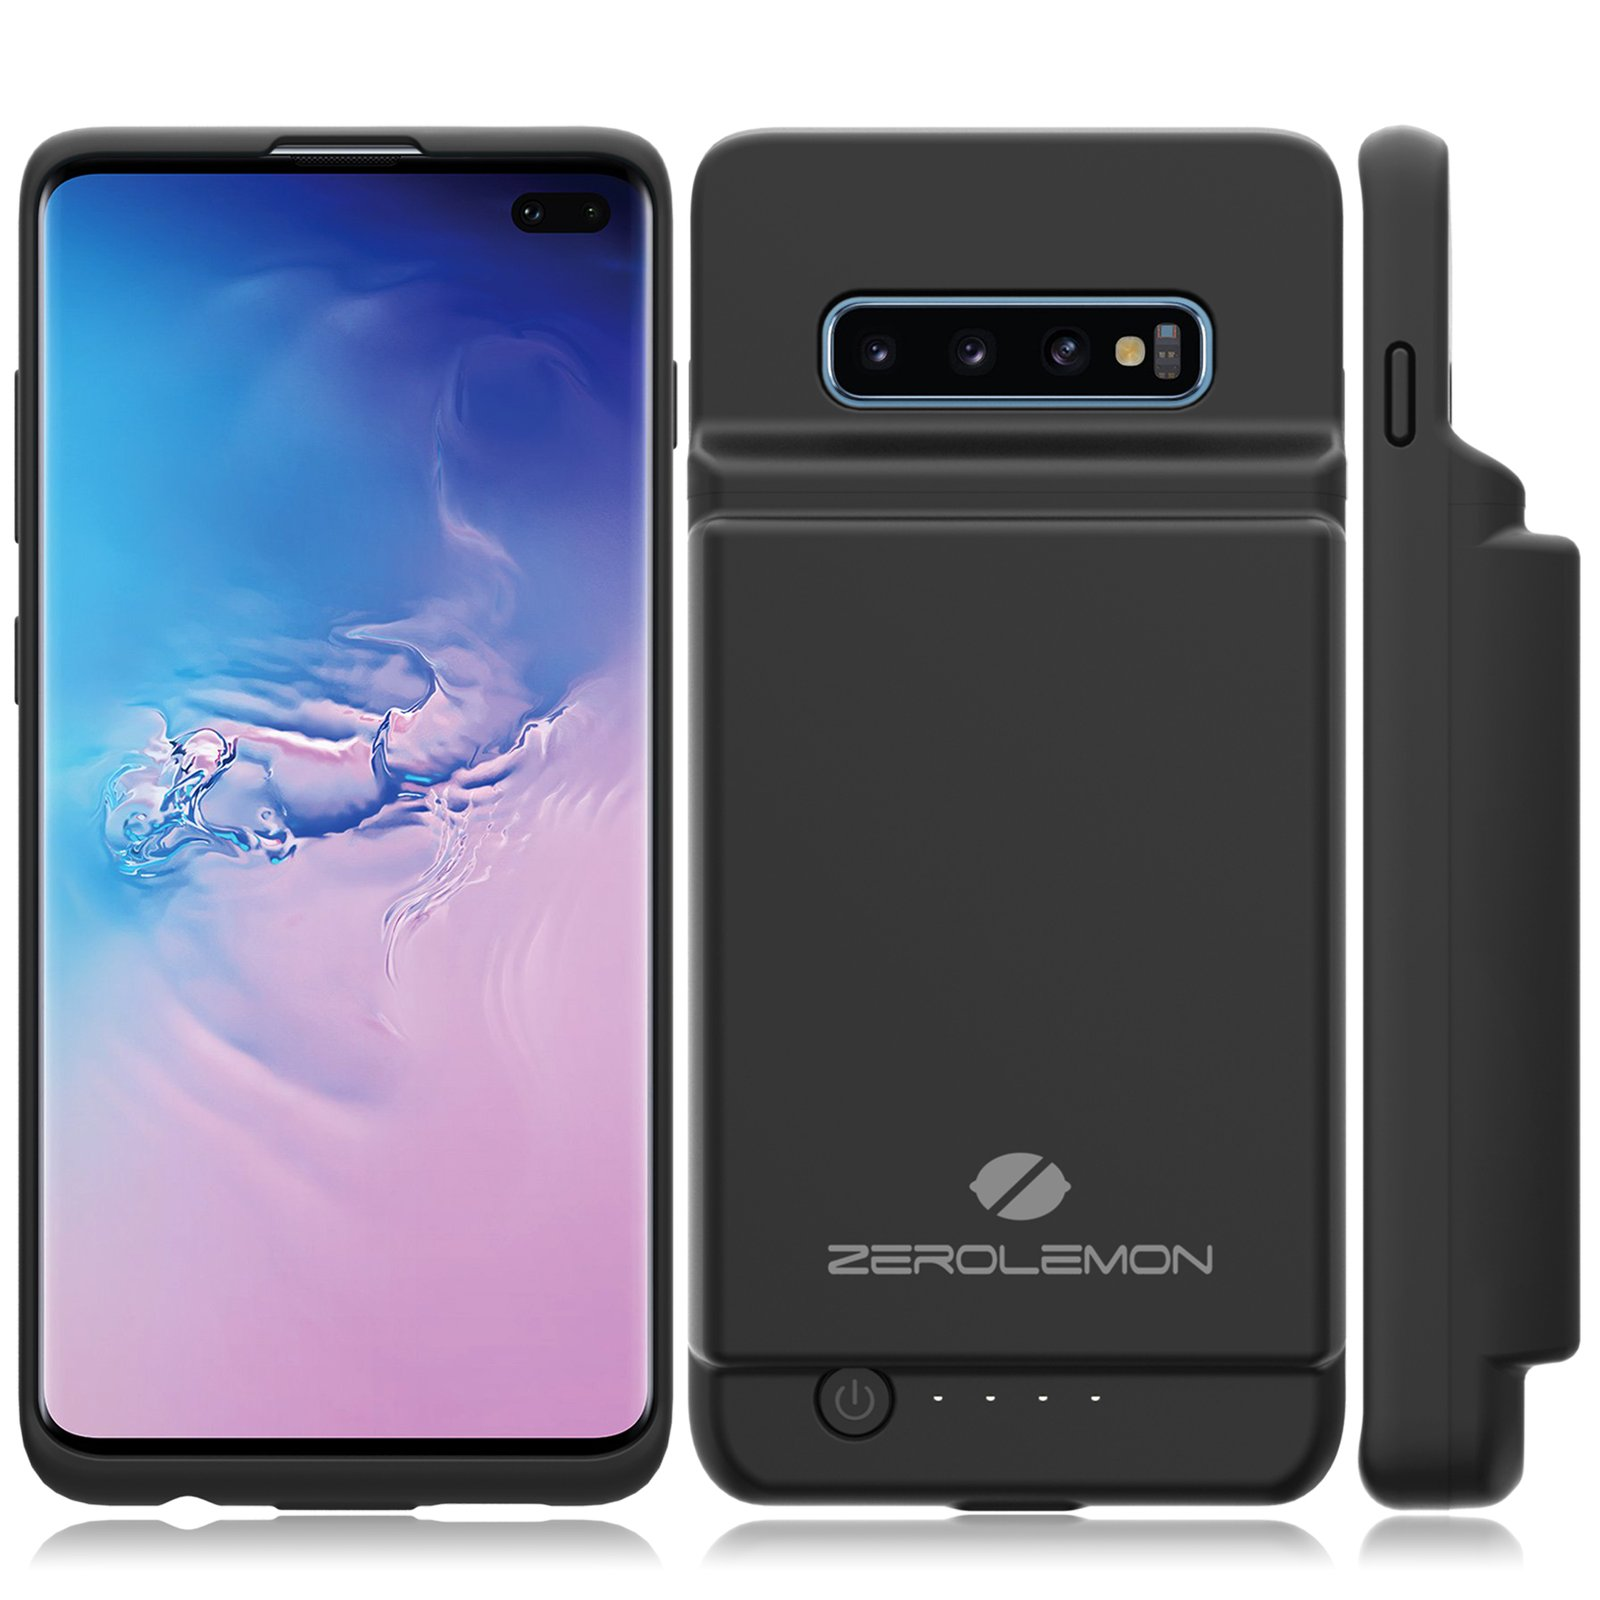 ZeroLemon introduces Samsung Galaxy S10 and S10+ models of their industry-leading battery cases [Sponsored Post]